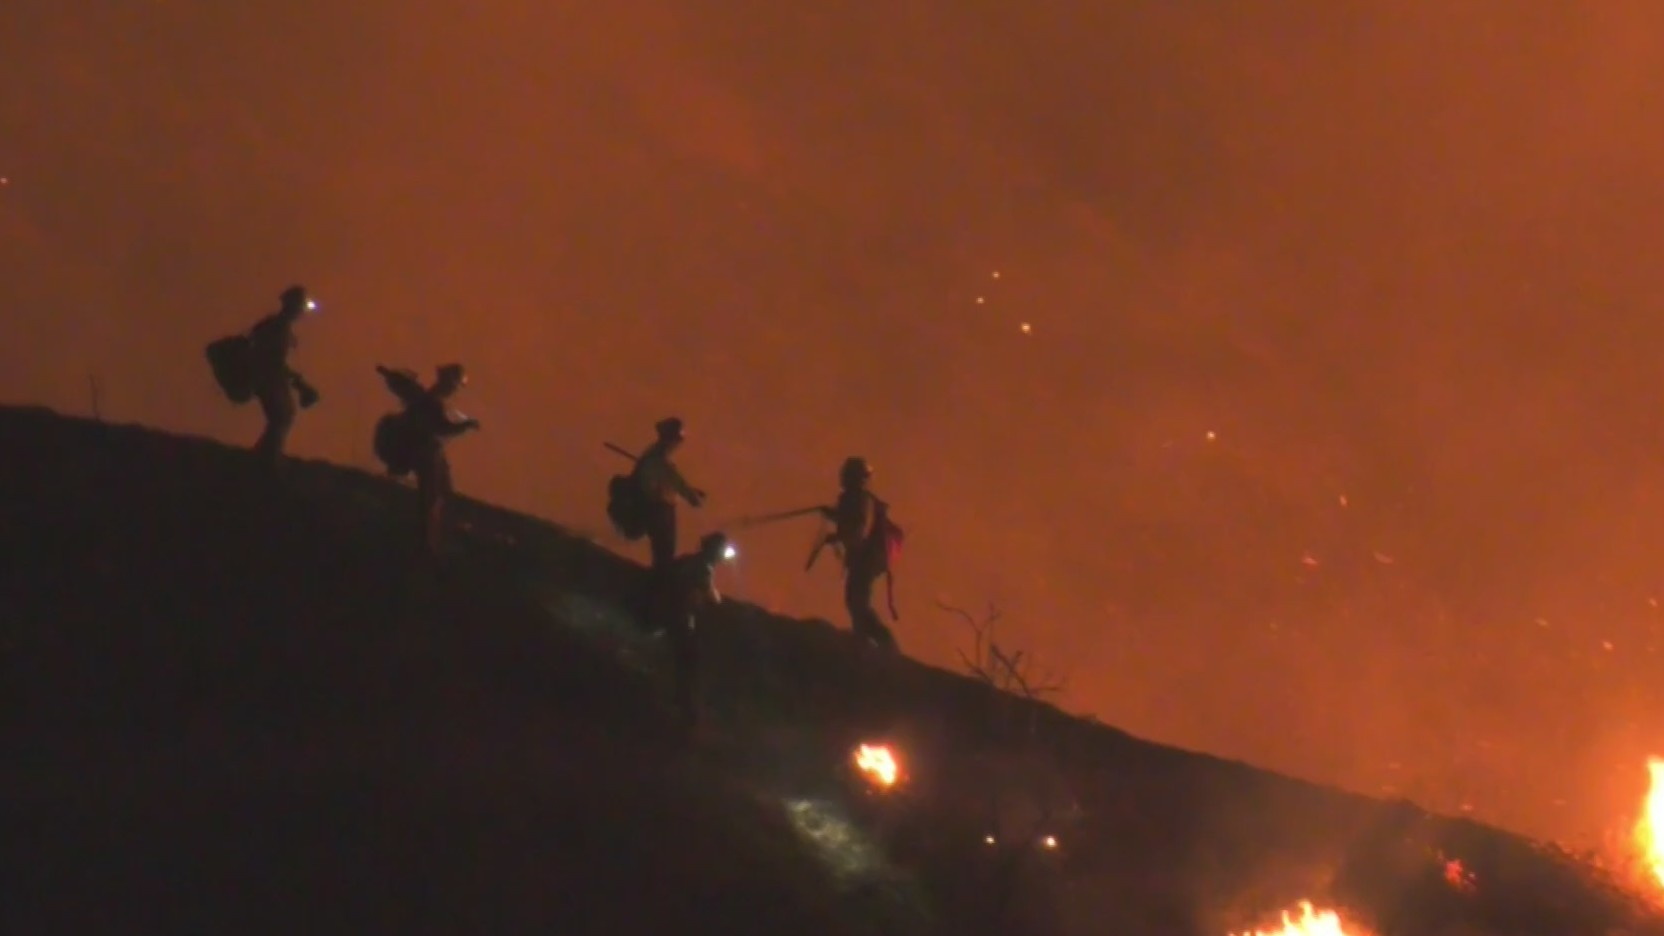 Crews battle a brush fire that sparked in Redlands on Oct. 14, 2020. (Nightowl Reporter)